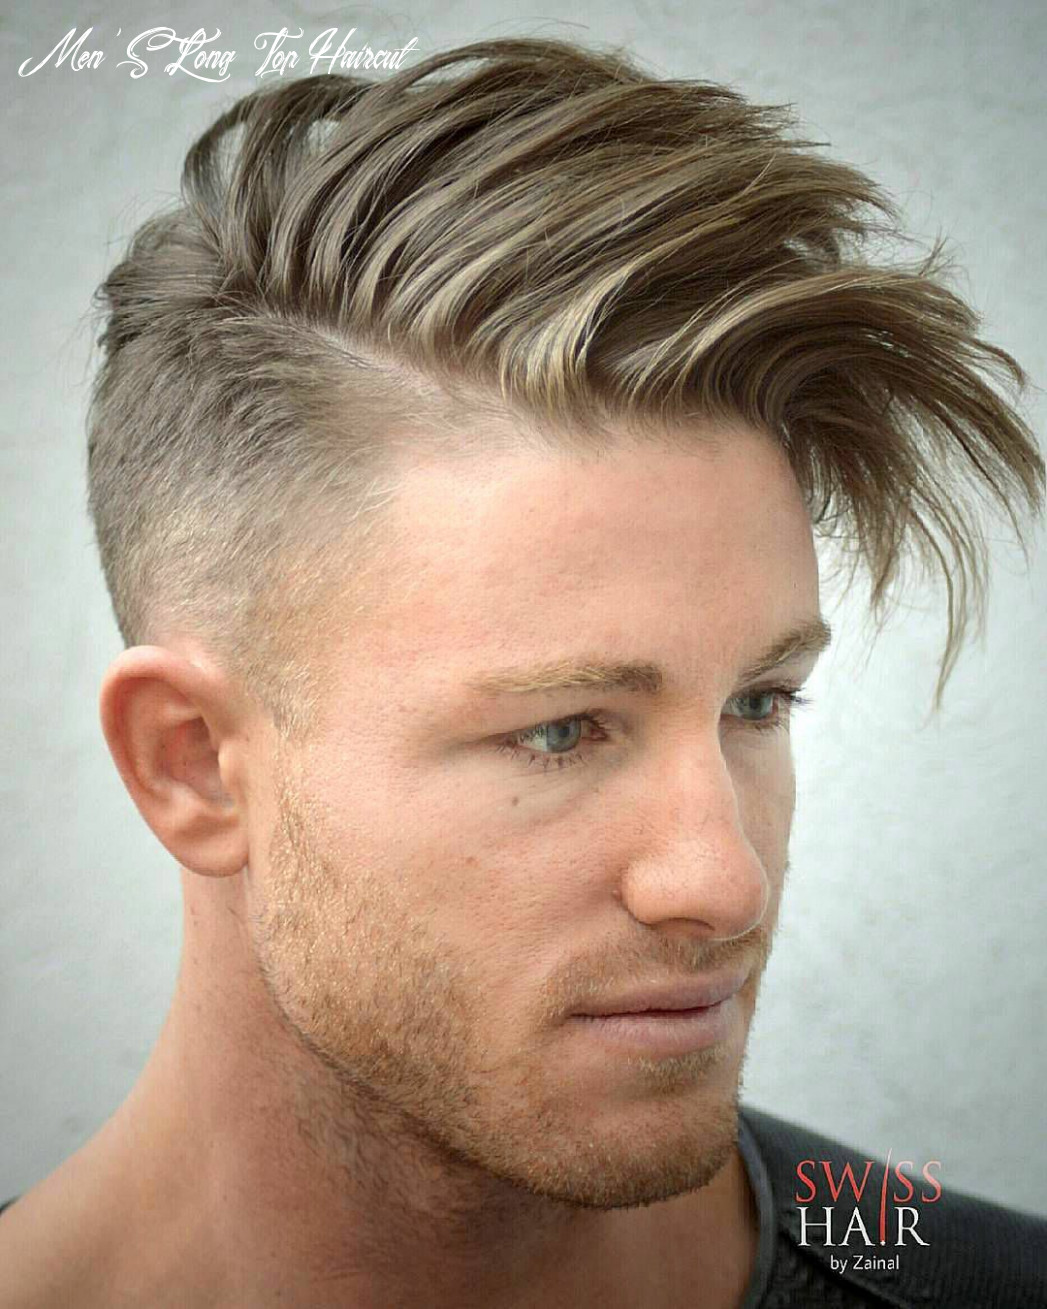 Long hair hairstyles for men: 10 cool haircut styles for 1010 (mit